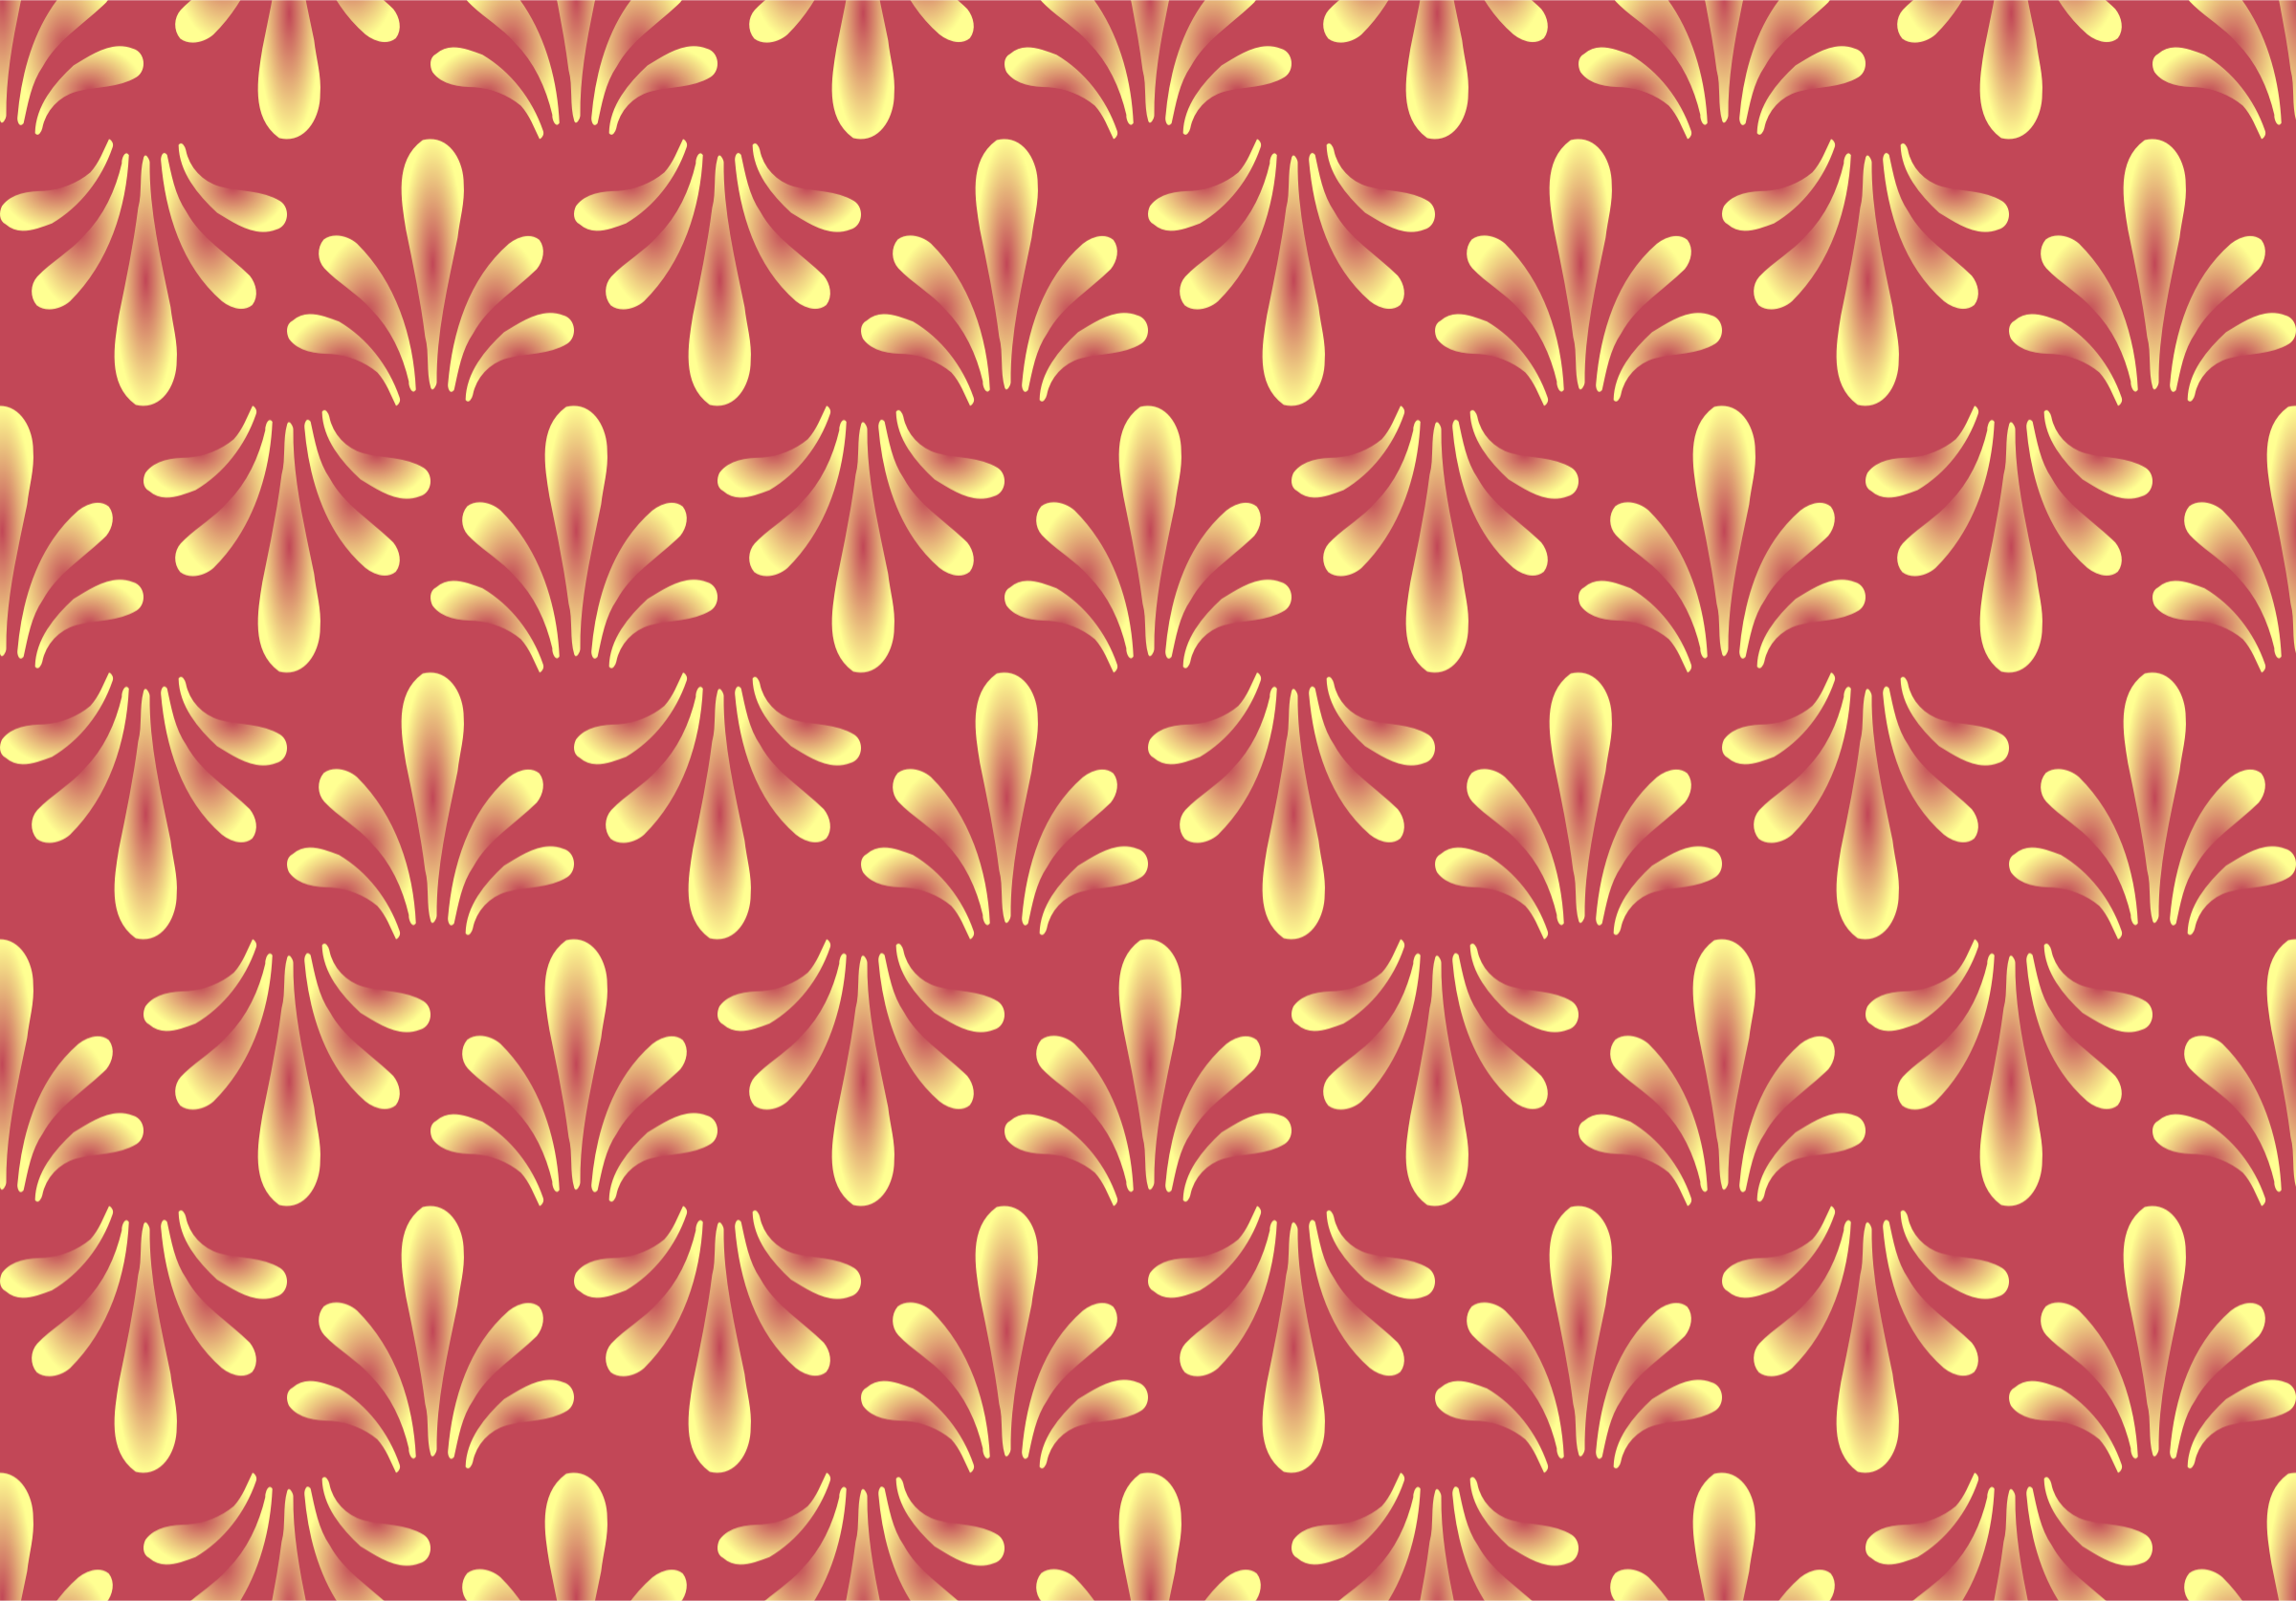 Background pattern 188 (colour 2) by Firkin